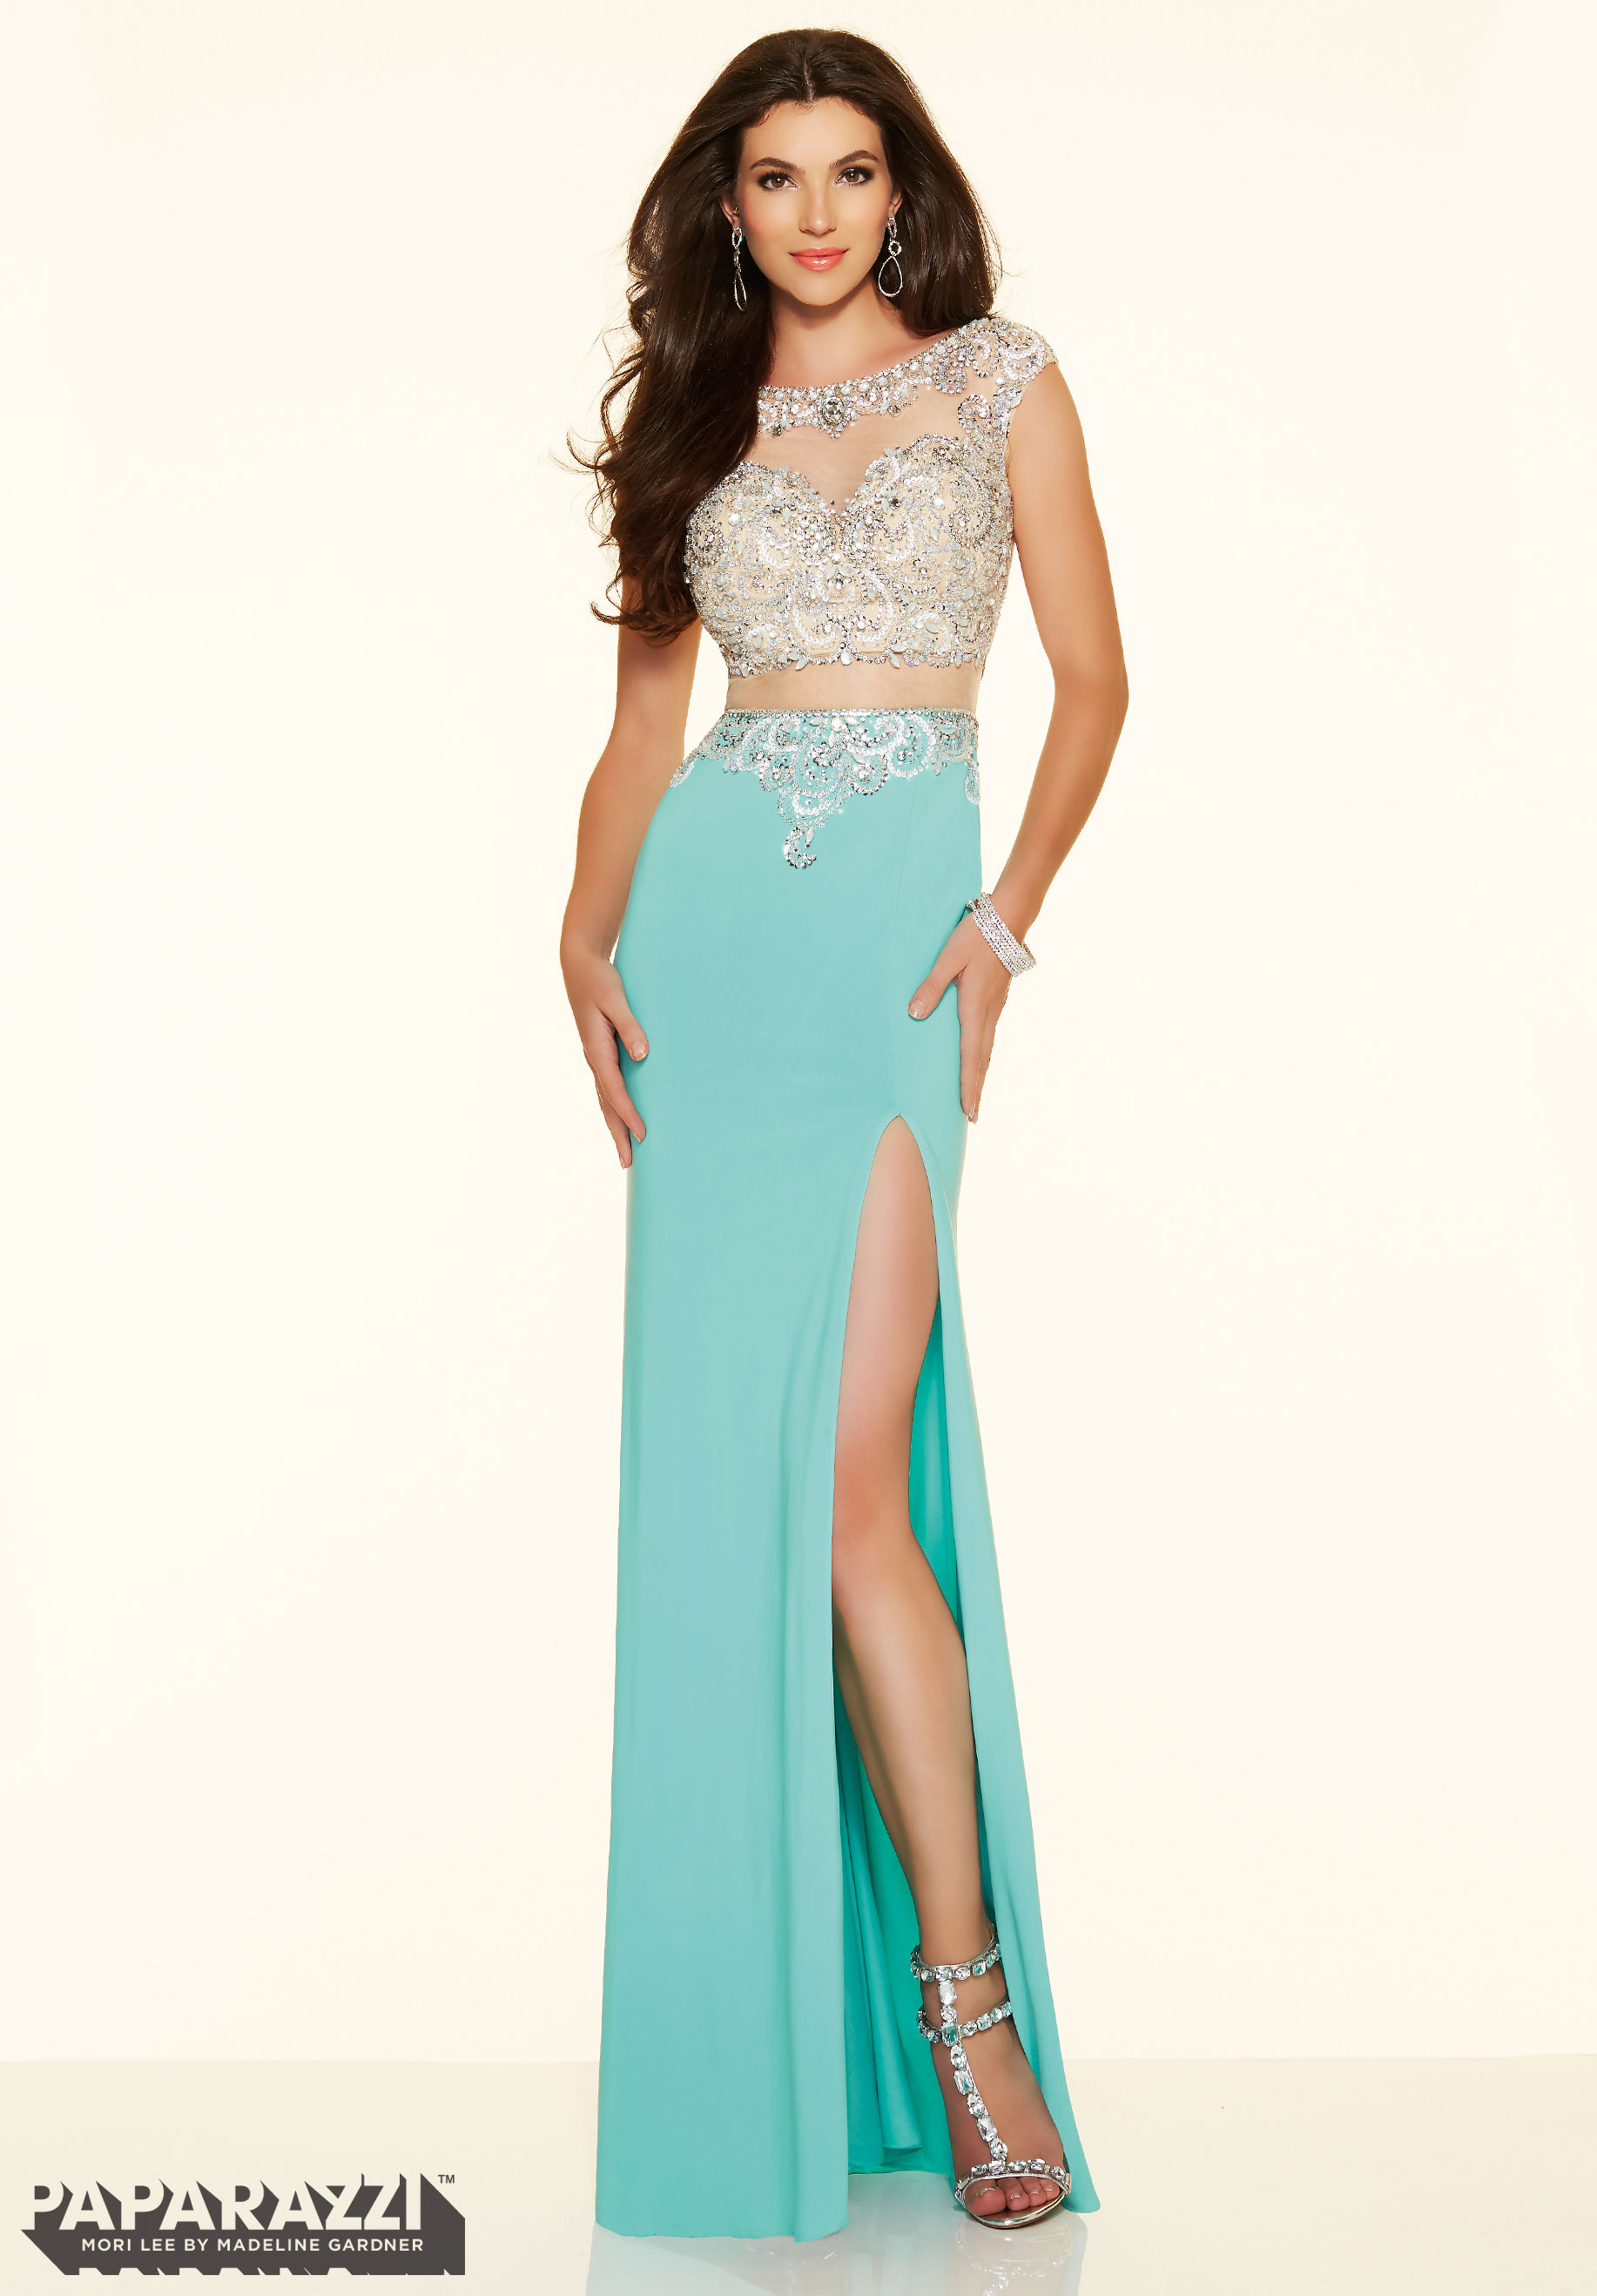 Prom Dresses In San Antonio Tx | Cocktail Dresses 2016